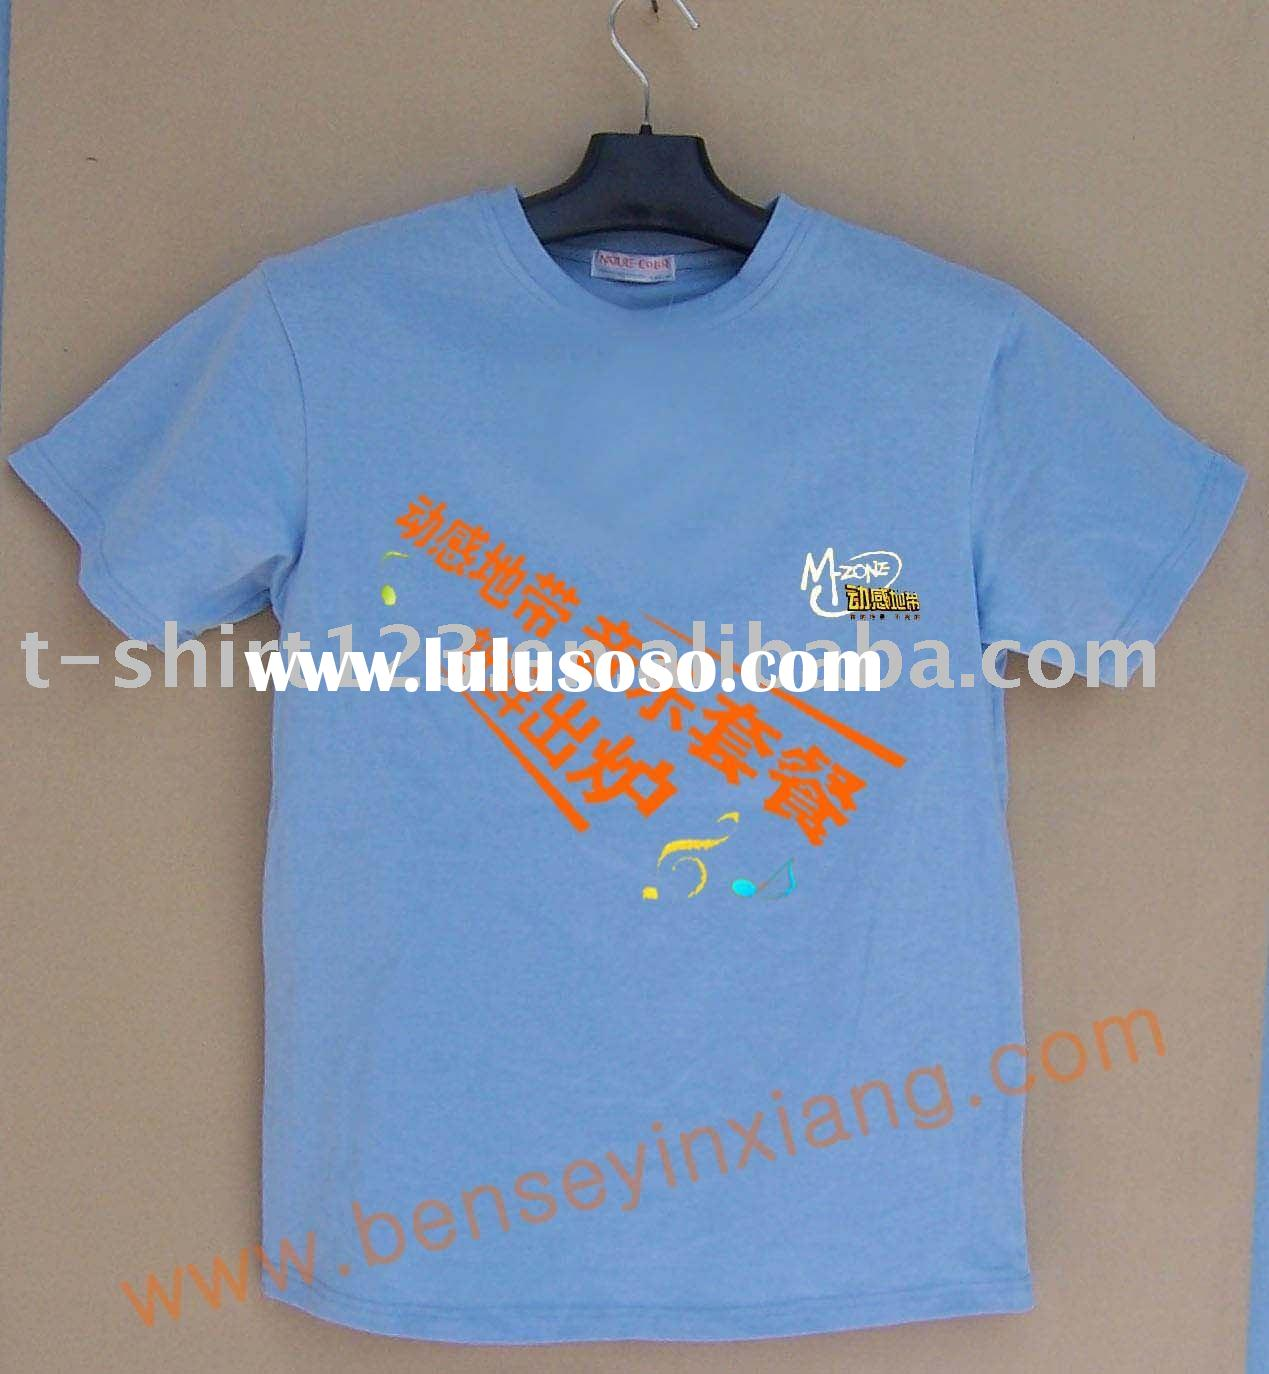 Printed wholesale t shirt printed wholesale t shirt for T shirt printing in bulk